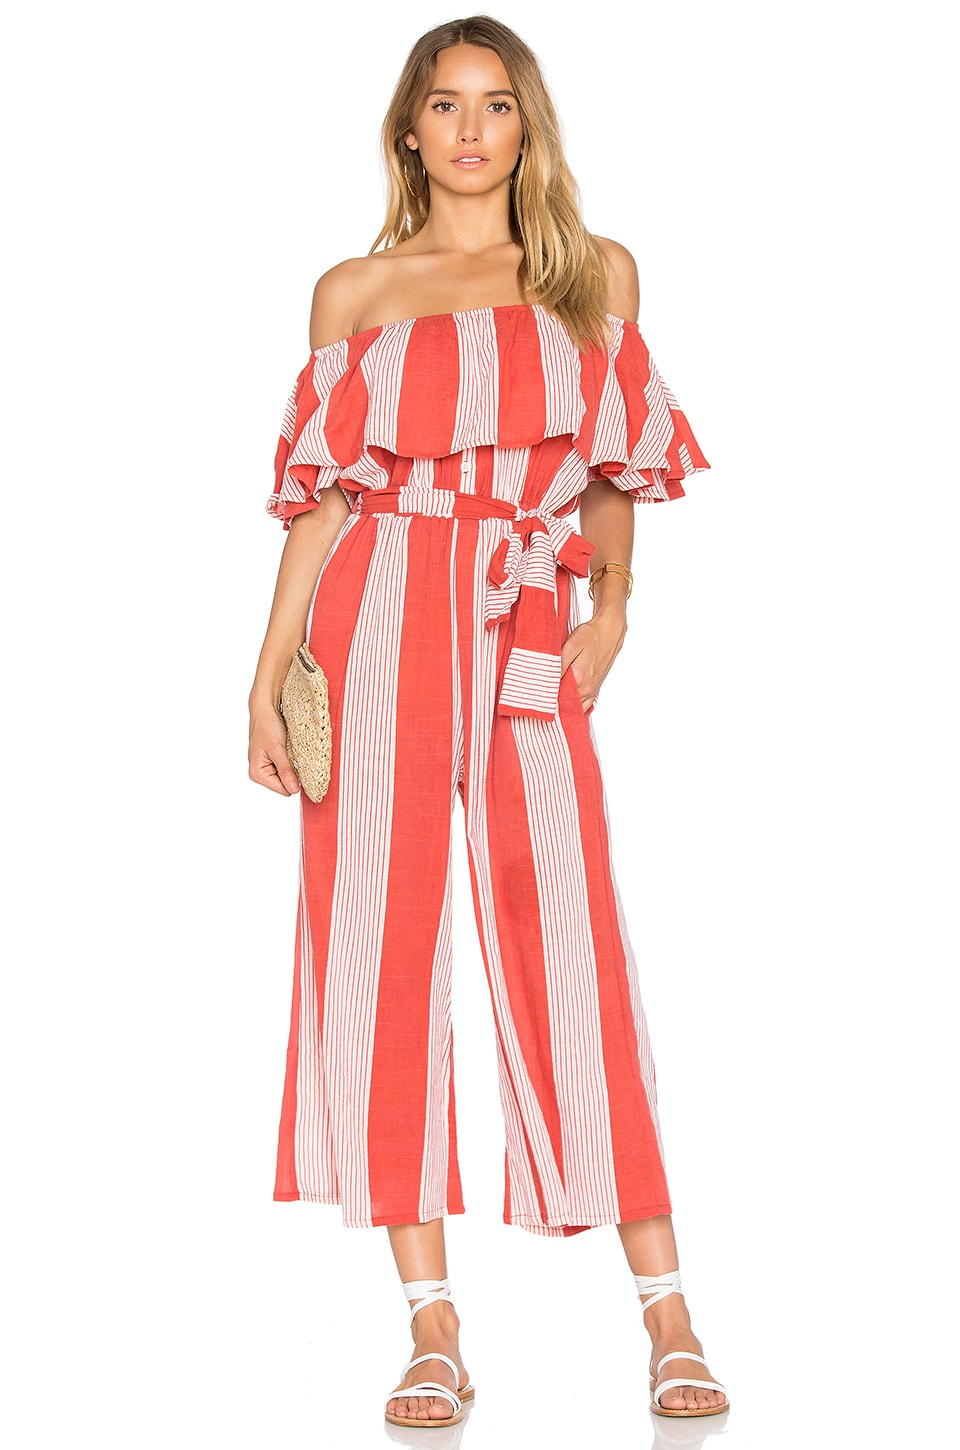 FAITHFULL THE BRAND x REVOLVE Holiday Jumpsuit in Picnic Stripe Print